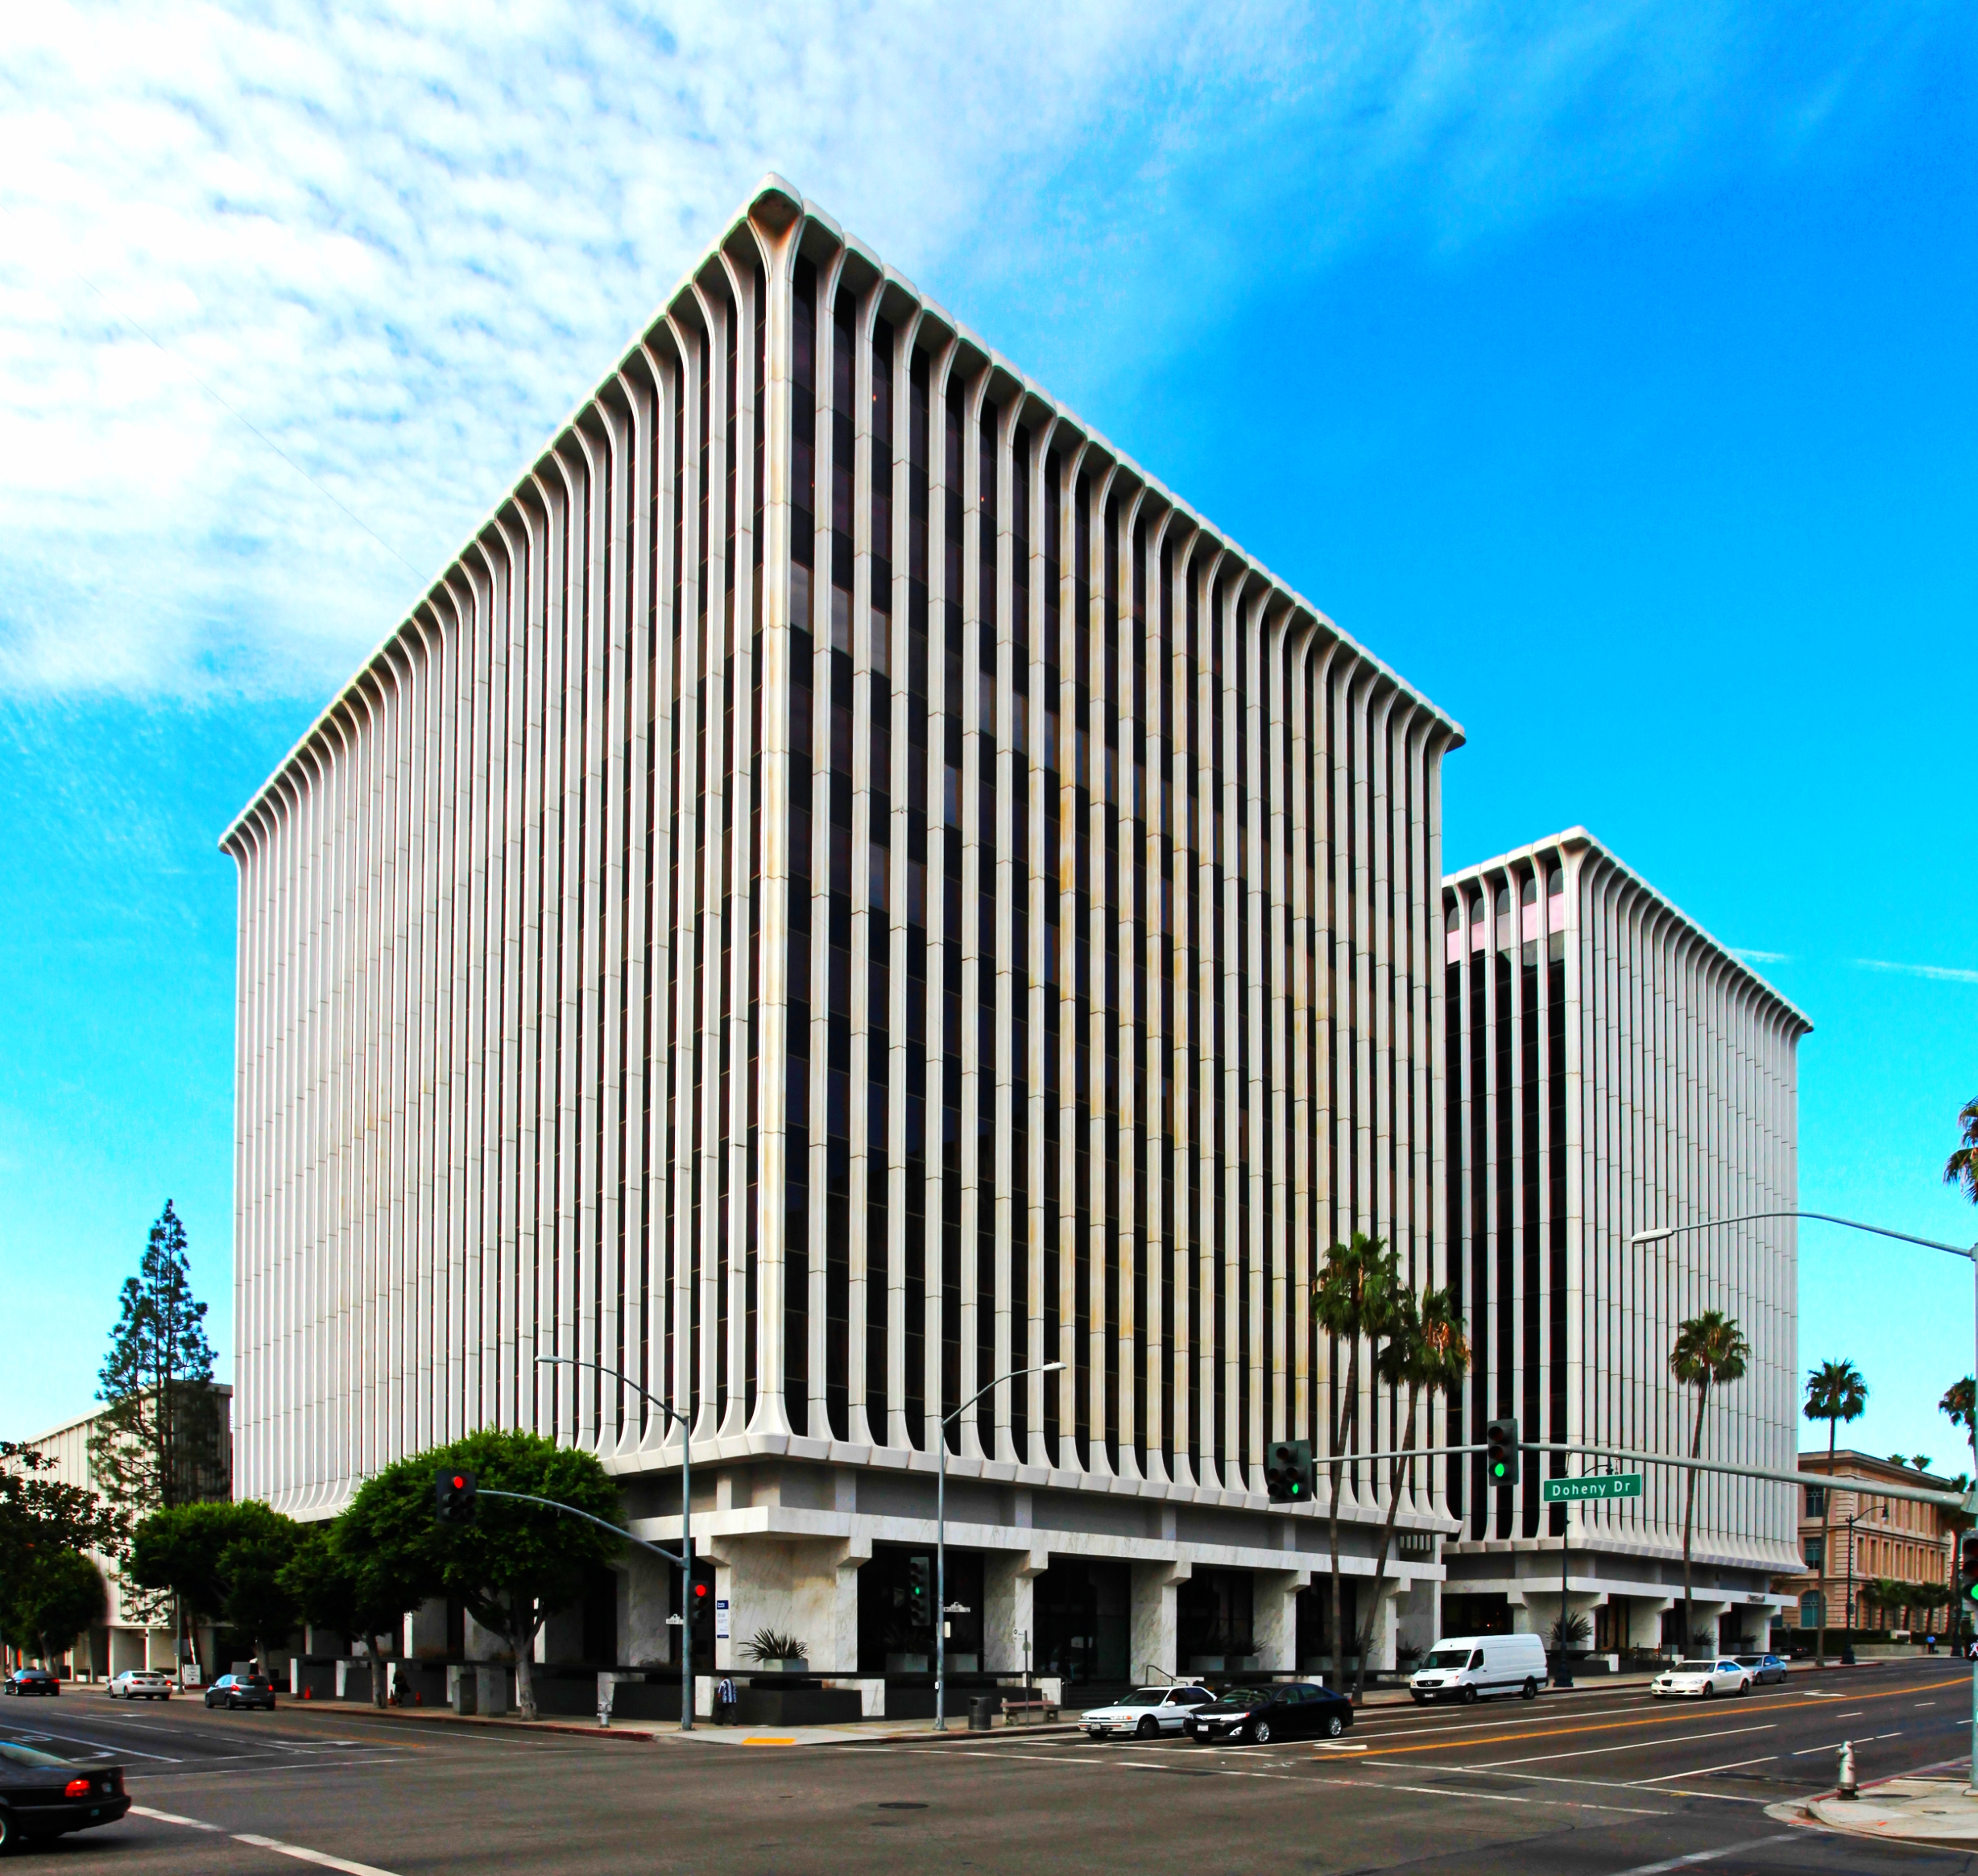 9100 Wilshire Blvd, Los Angeles